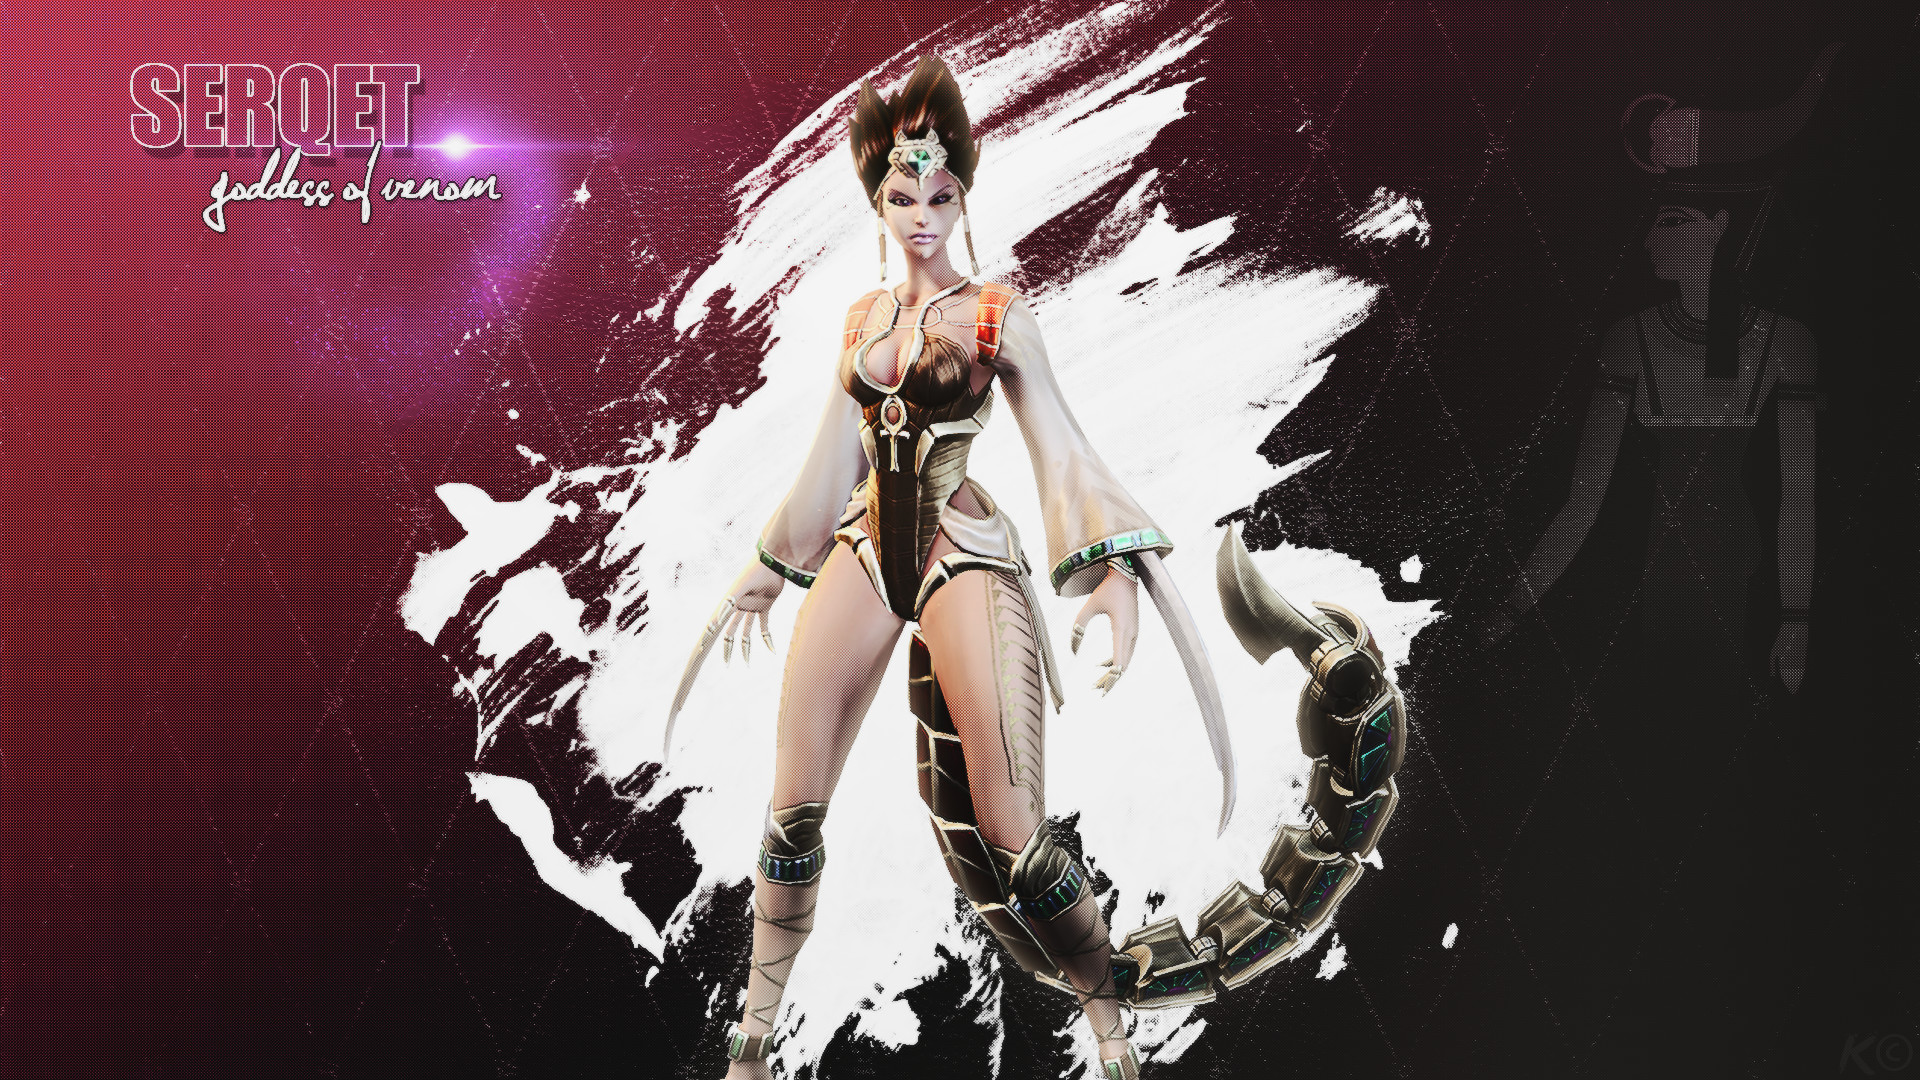 Serqet SMITE Wallpaper by DustyMcBacon Serqet SMITE Wallpaper by  DustyMcBacon